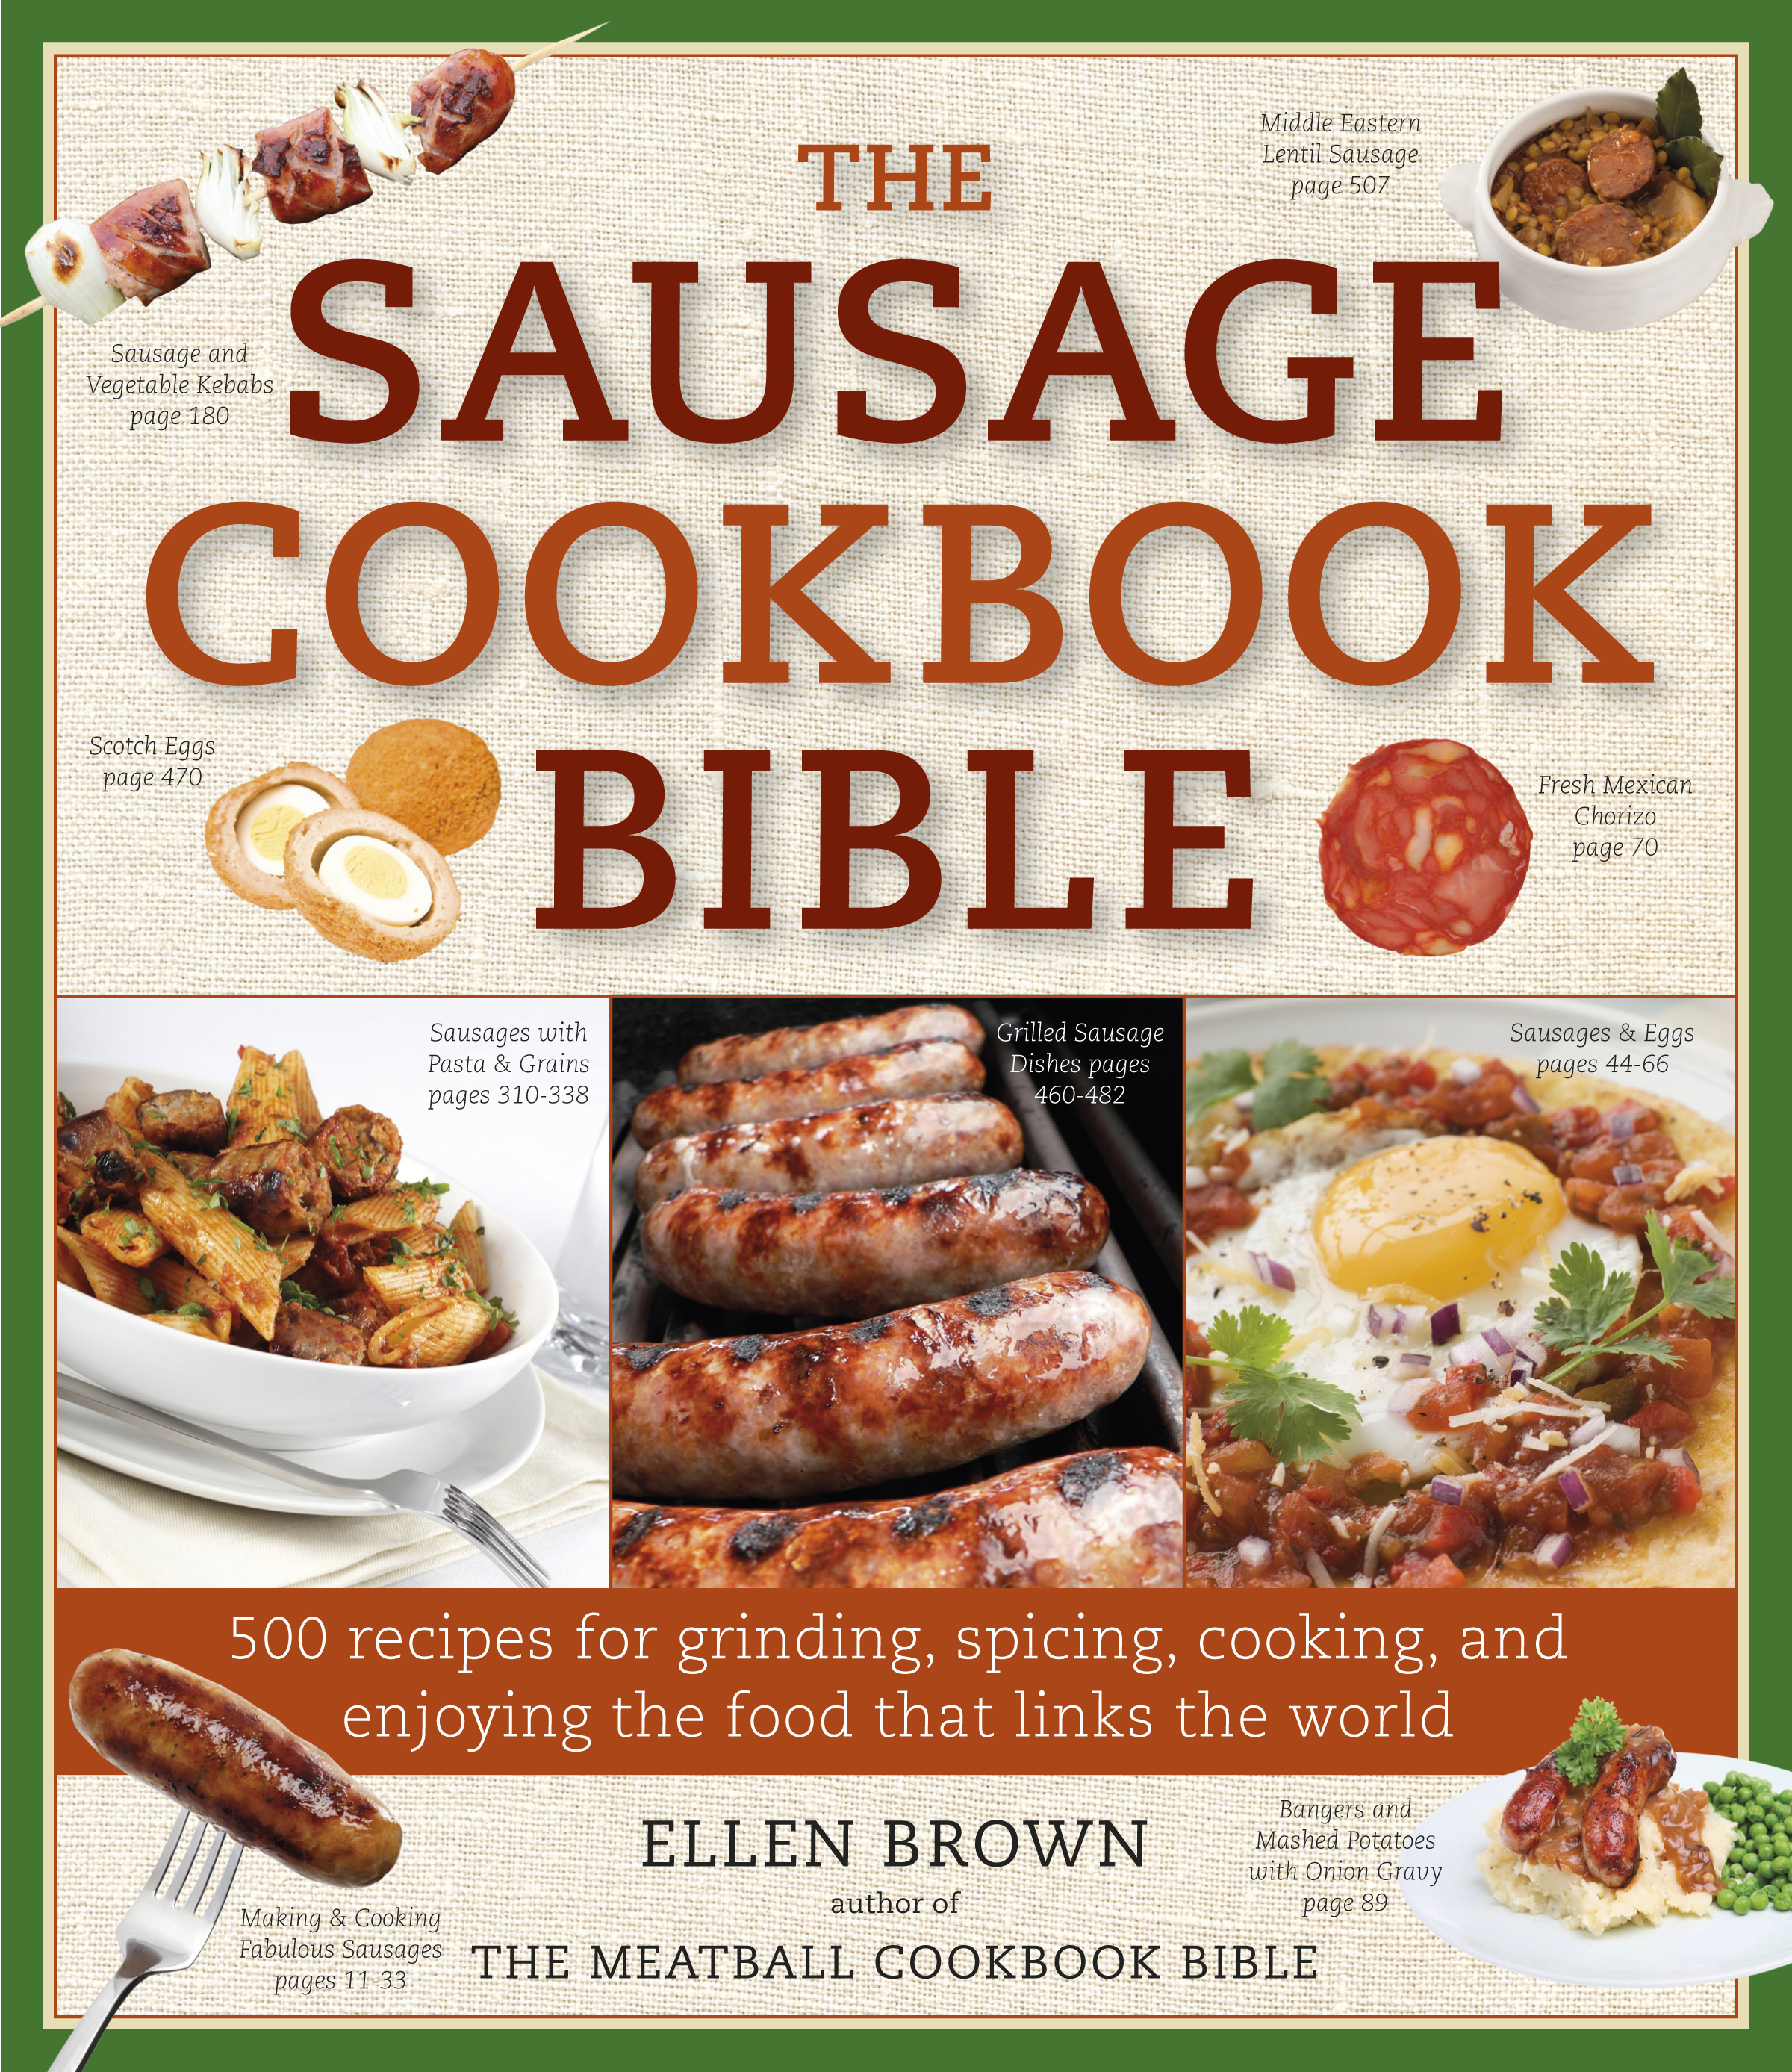 The sausage cookbook bible book by ellen brown official 500 recipes for cooking sausage forumfinder